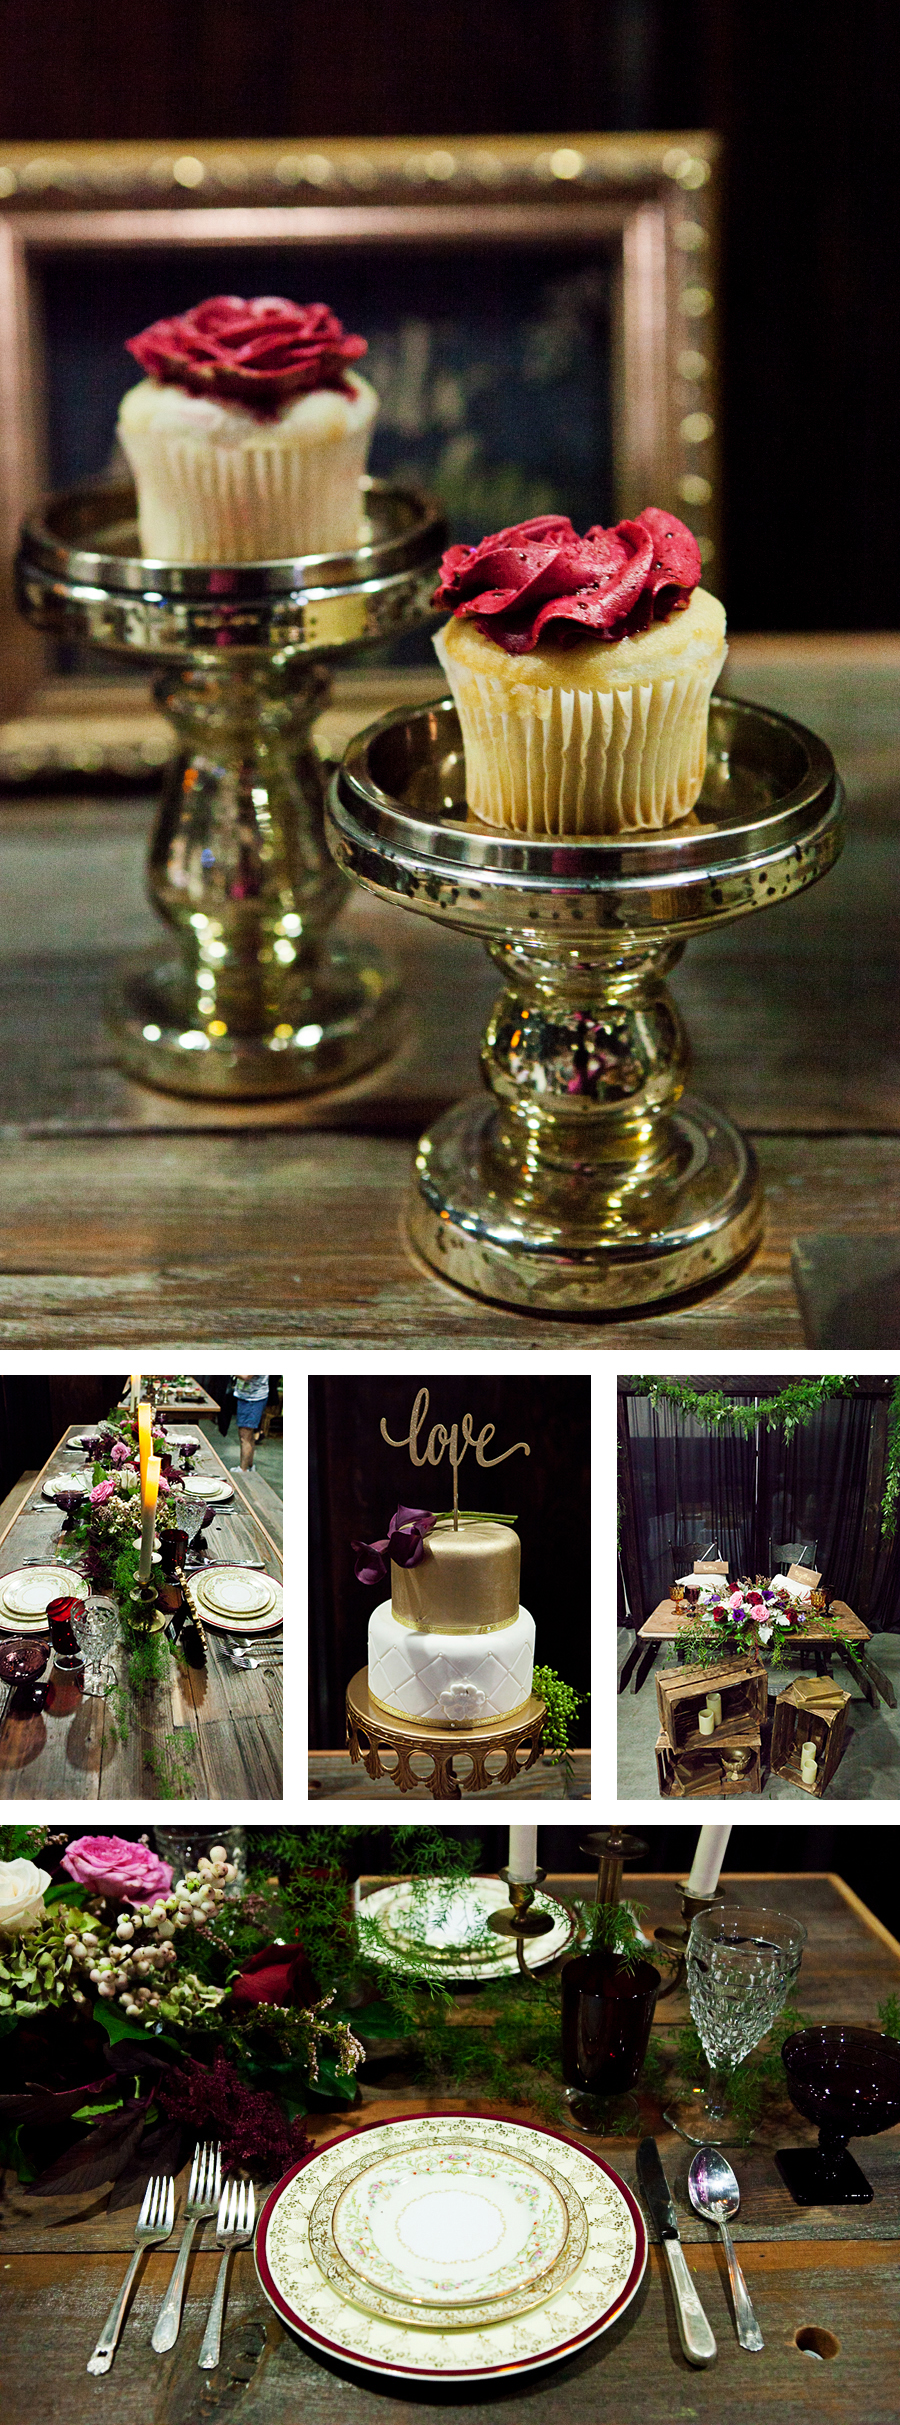 cake-expo, cake, expo, party pieces by perry, berries and blush cake studio, fitzgerald's floral events